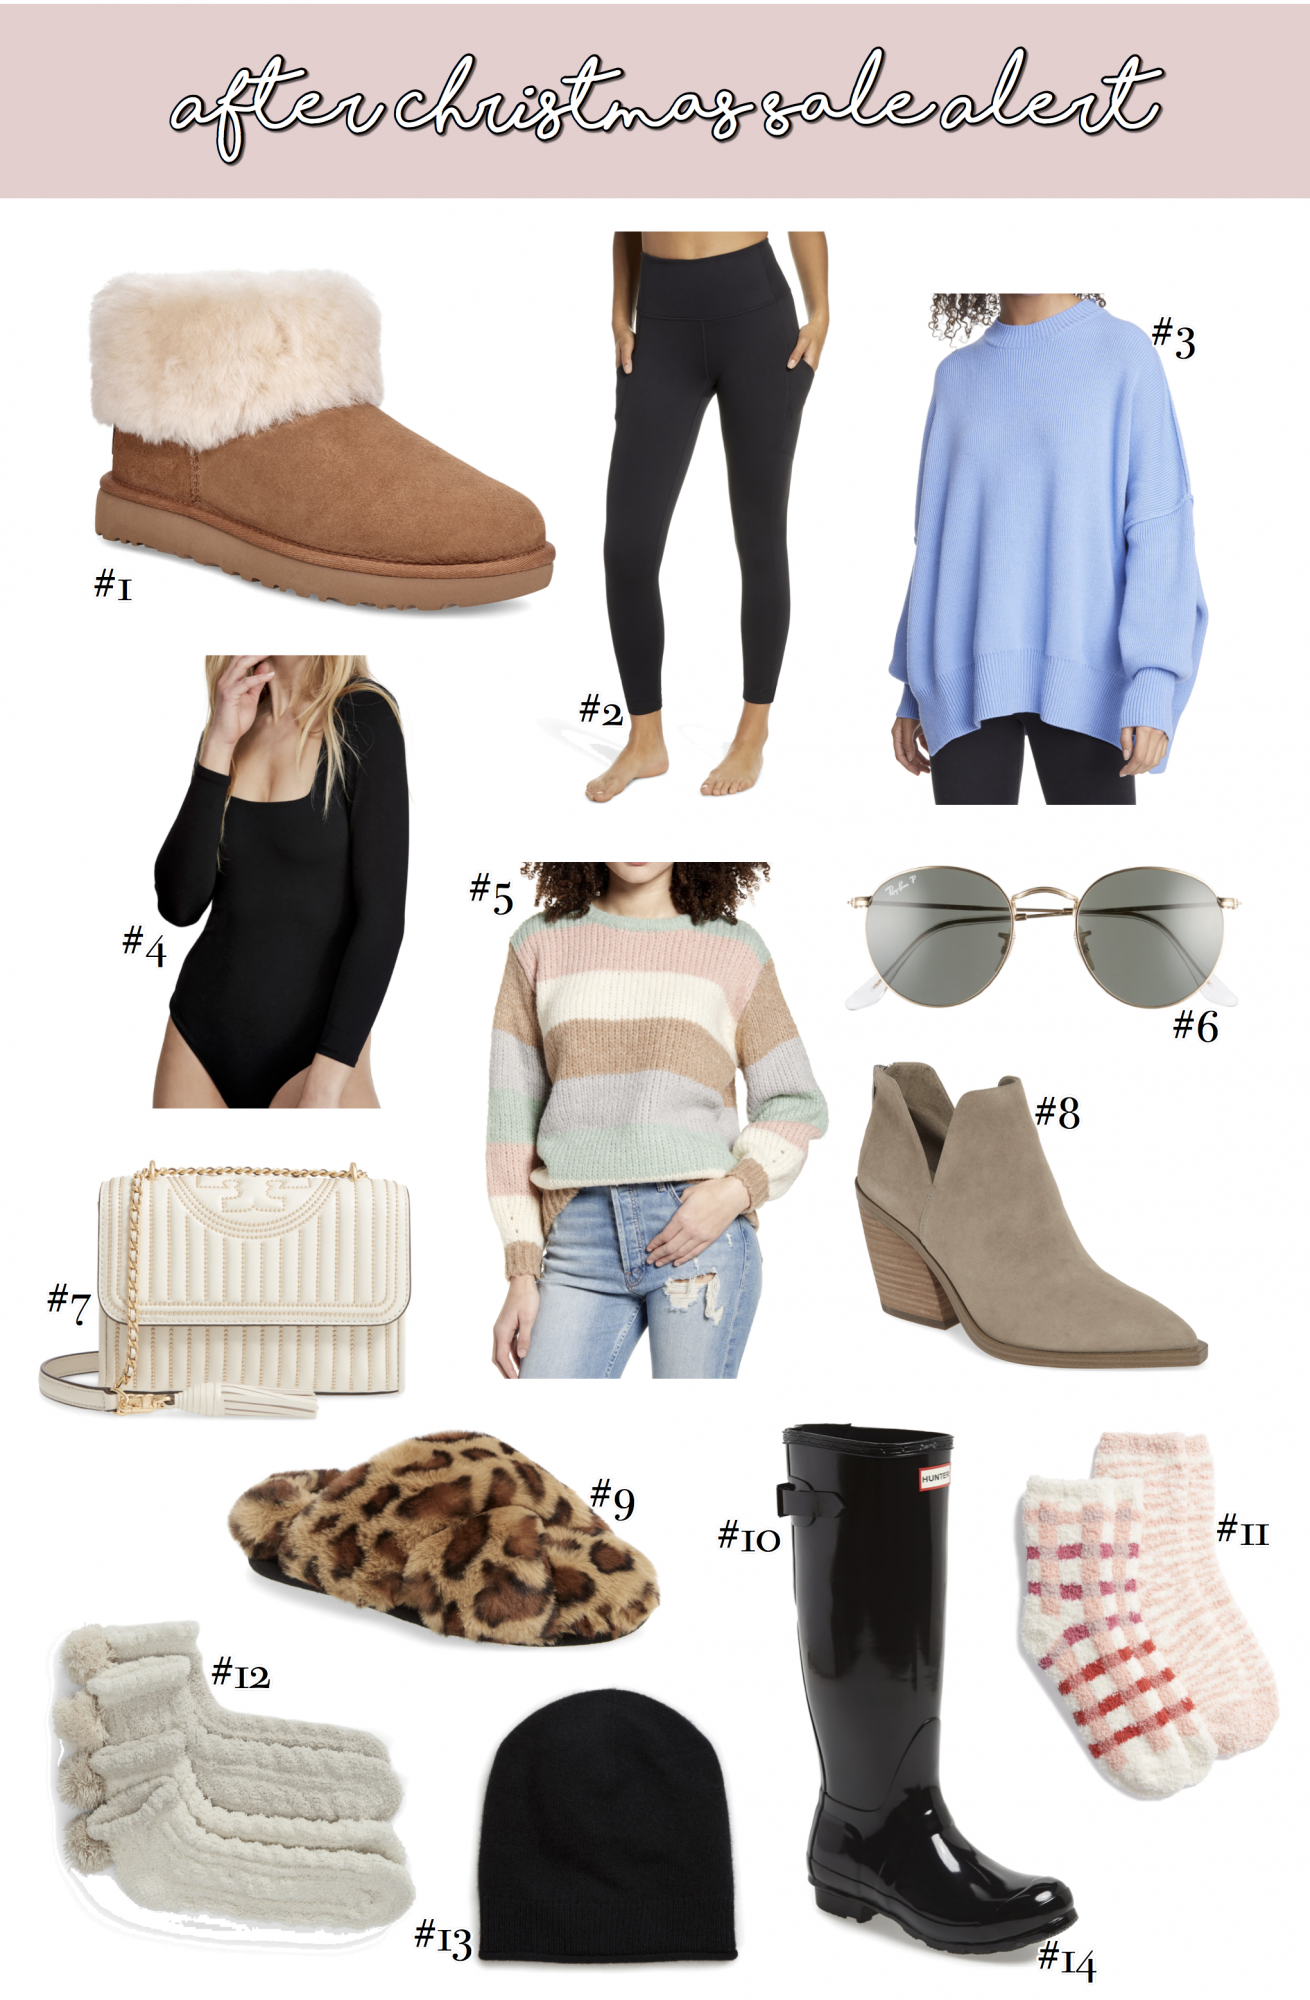 Best After Christmas Sales / Deals [40% Off!] by popular Oklahoma life and style blog, The Sweetest Thing: collage image of Ugg boots, Zella leggings, oversized Free People sweater, Hunter rain boots, Ray-Ban sunglasses, Free People bodysuit, Tory Burch crossbody bag, cahmere beanie, fuzzy leopard print slippers, stripe sweater, taupe suede ankle boots, and fuzzy pom socks.